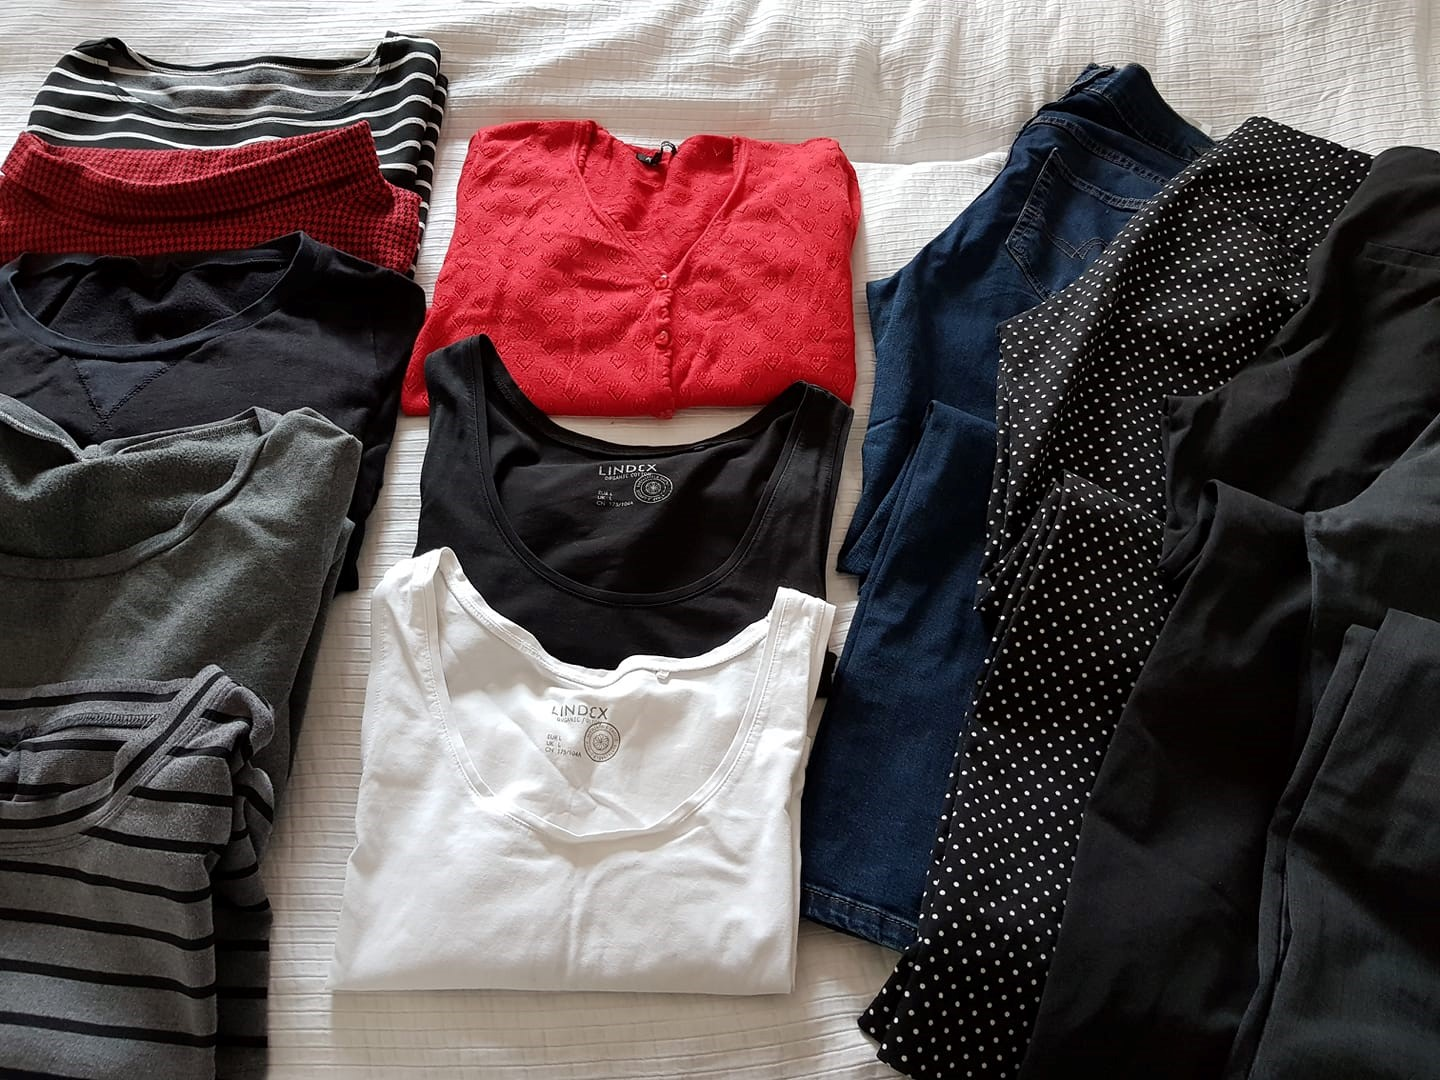 My first ever capsule wardrobe.